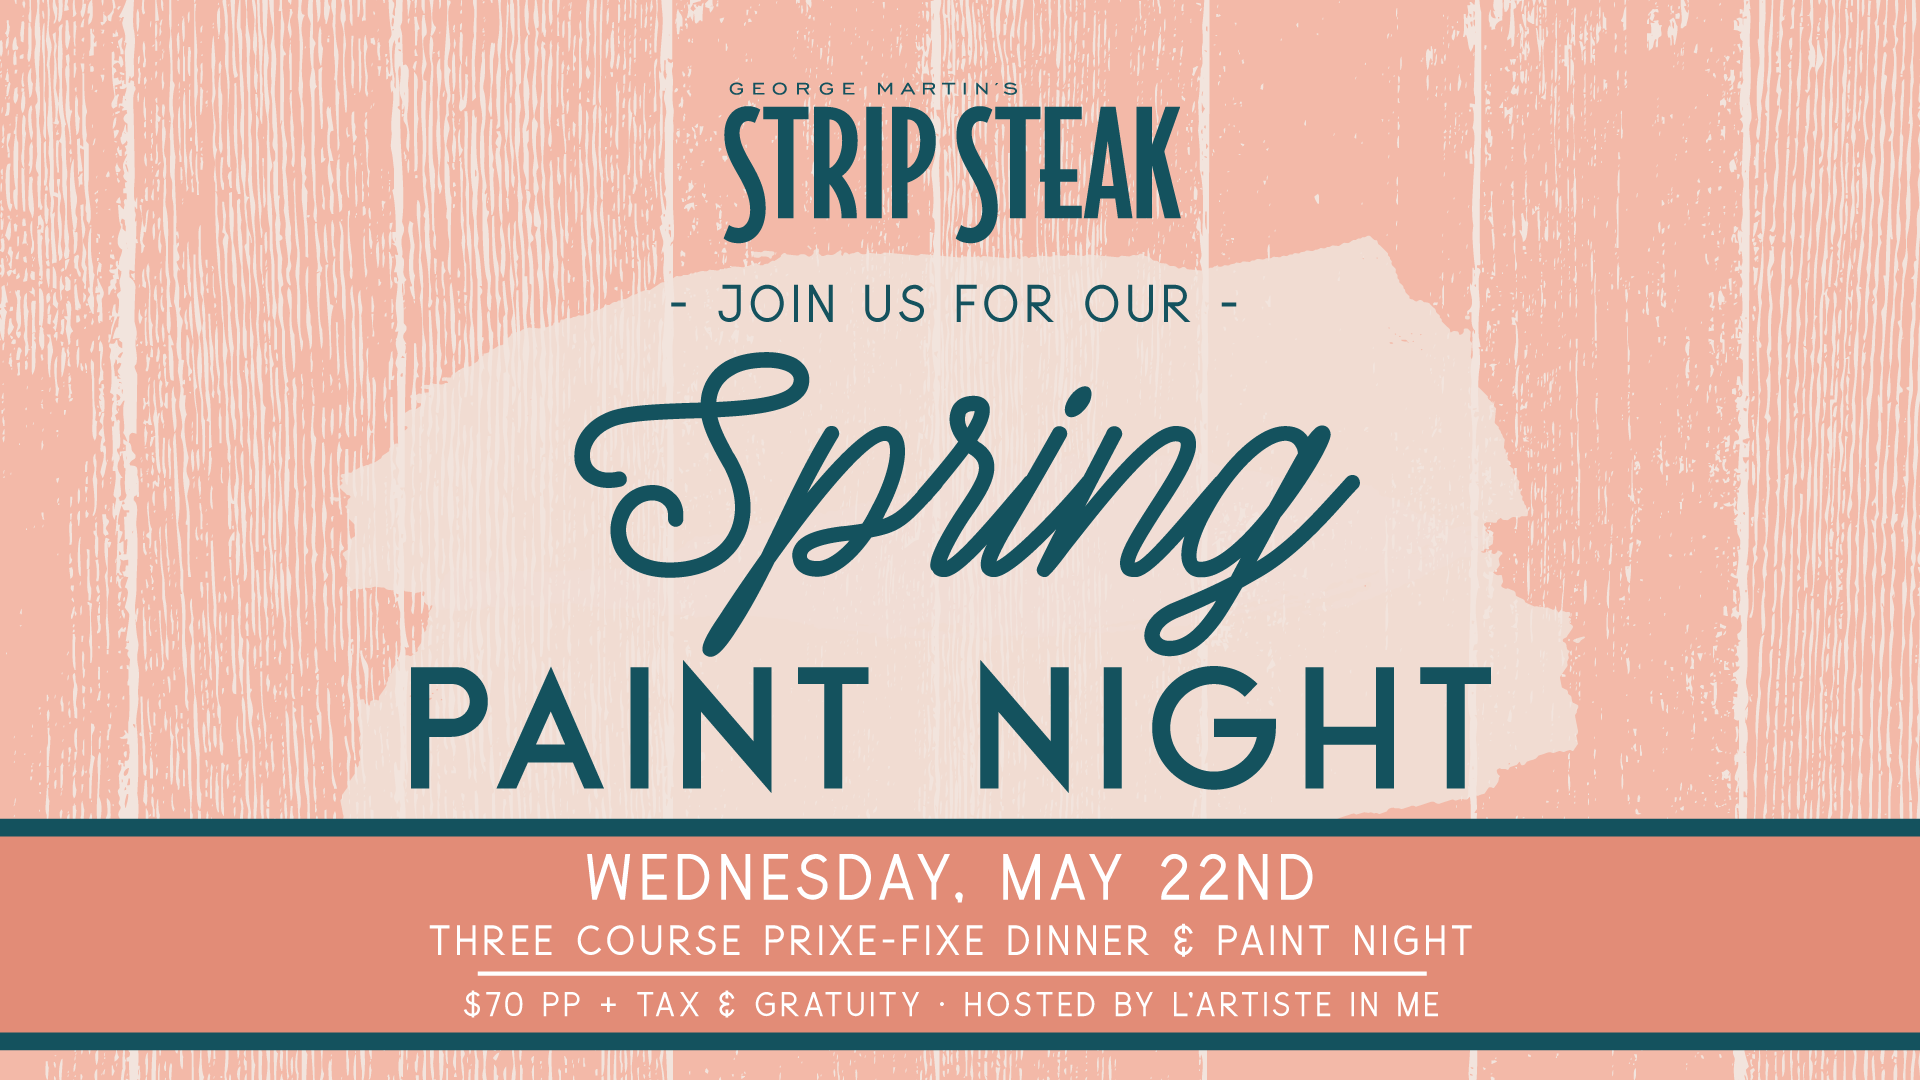 Flyer for Spring Paint Night on Wednesday, May 22nd